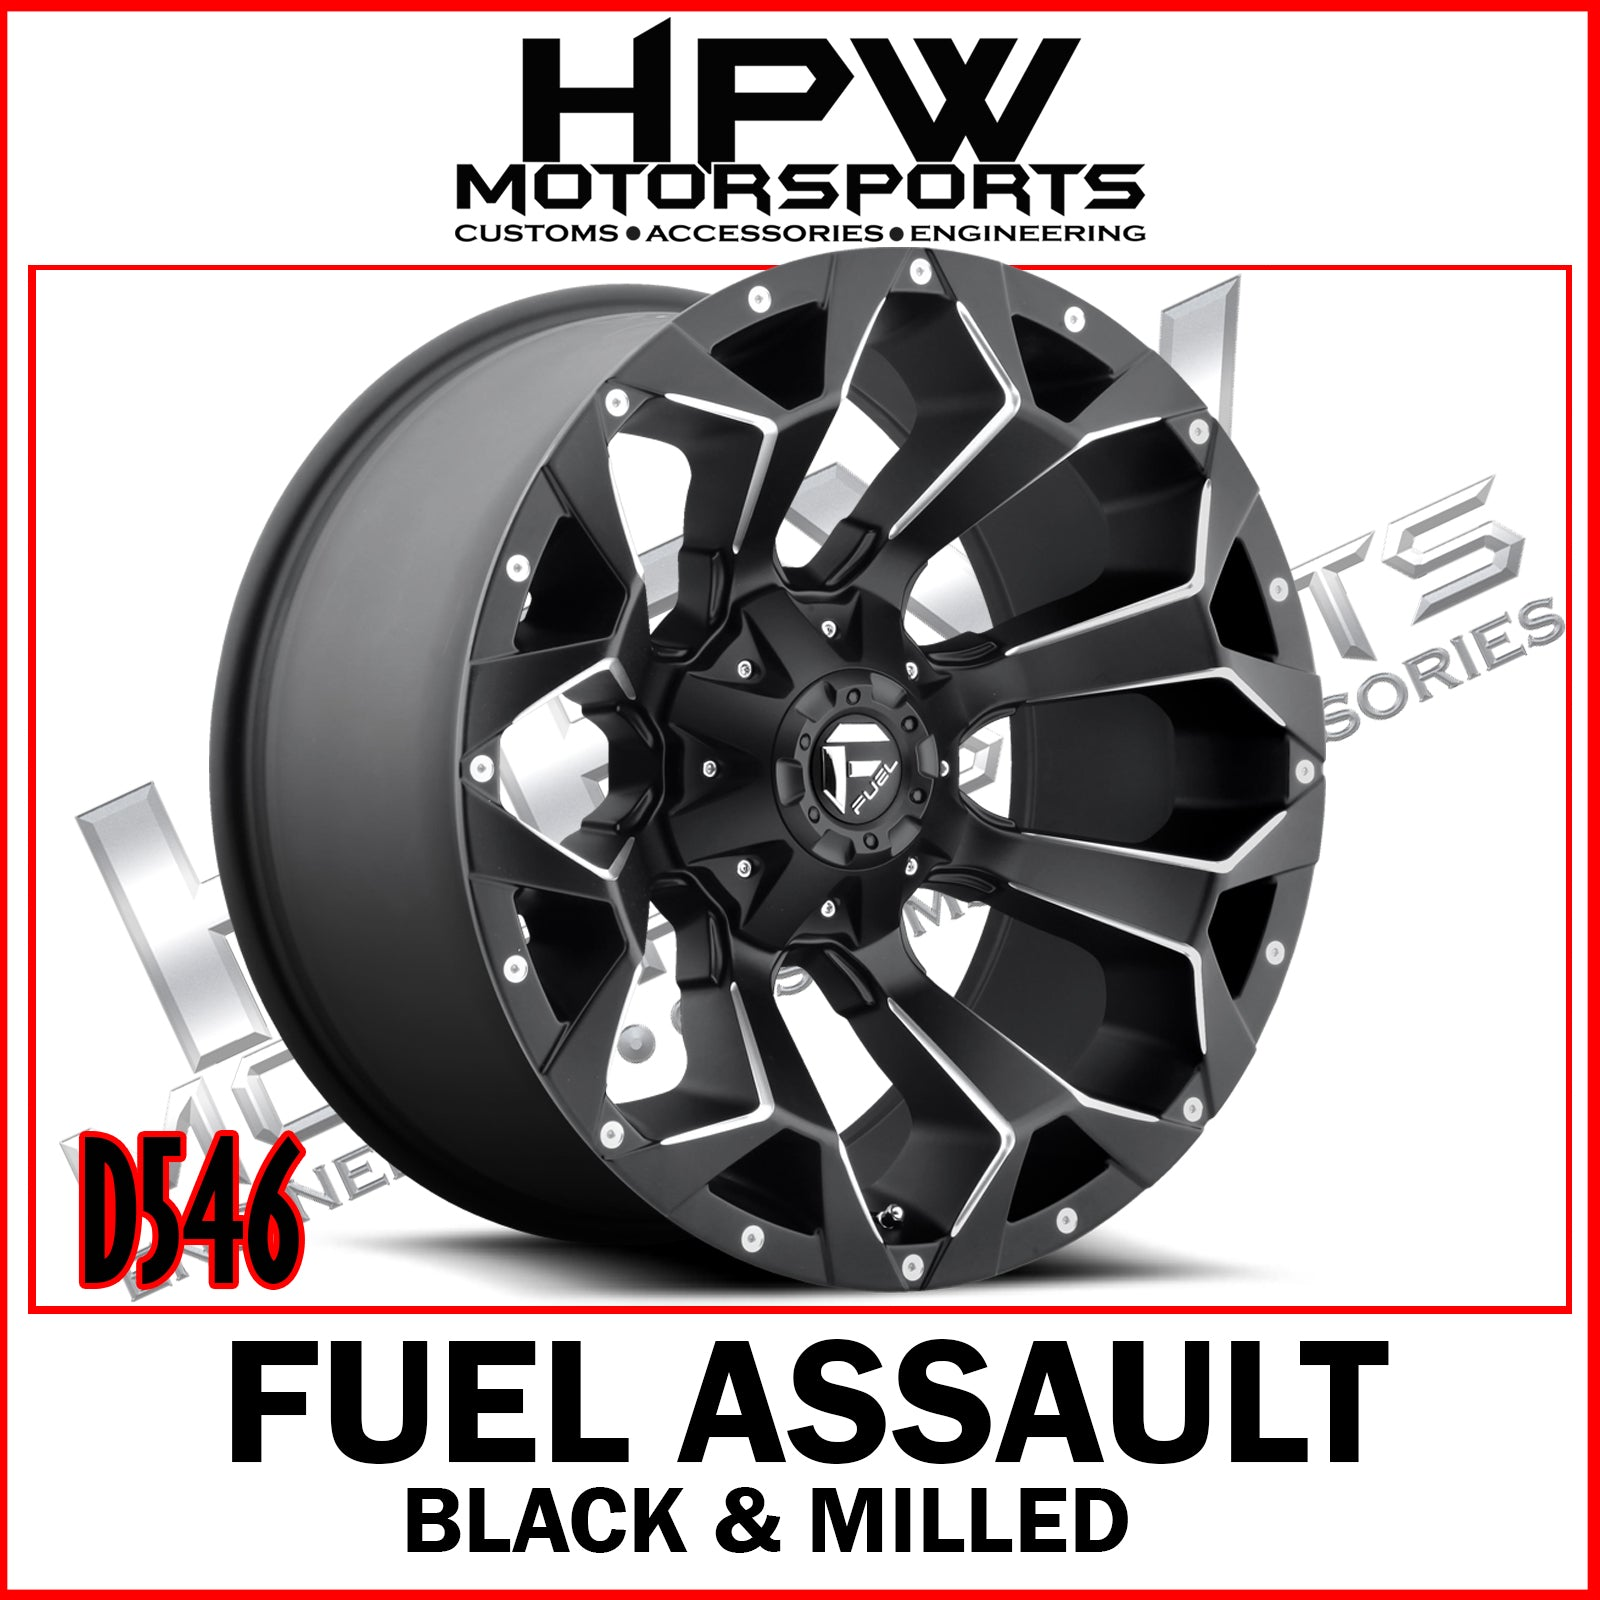 D546 FUEL ASSAULT BLACK & MILLED - Set of 4